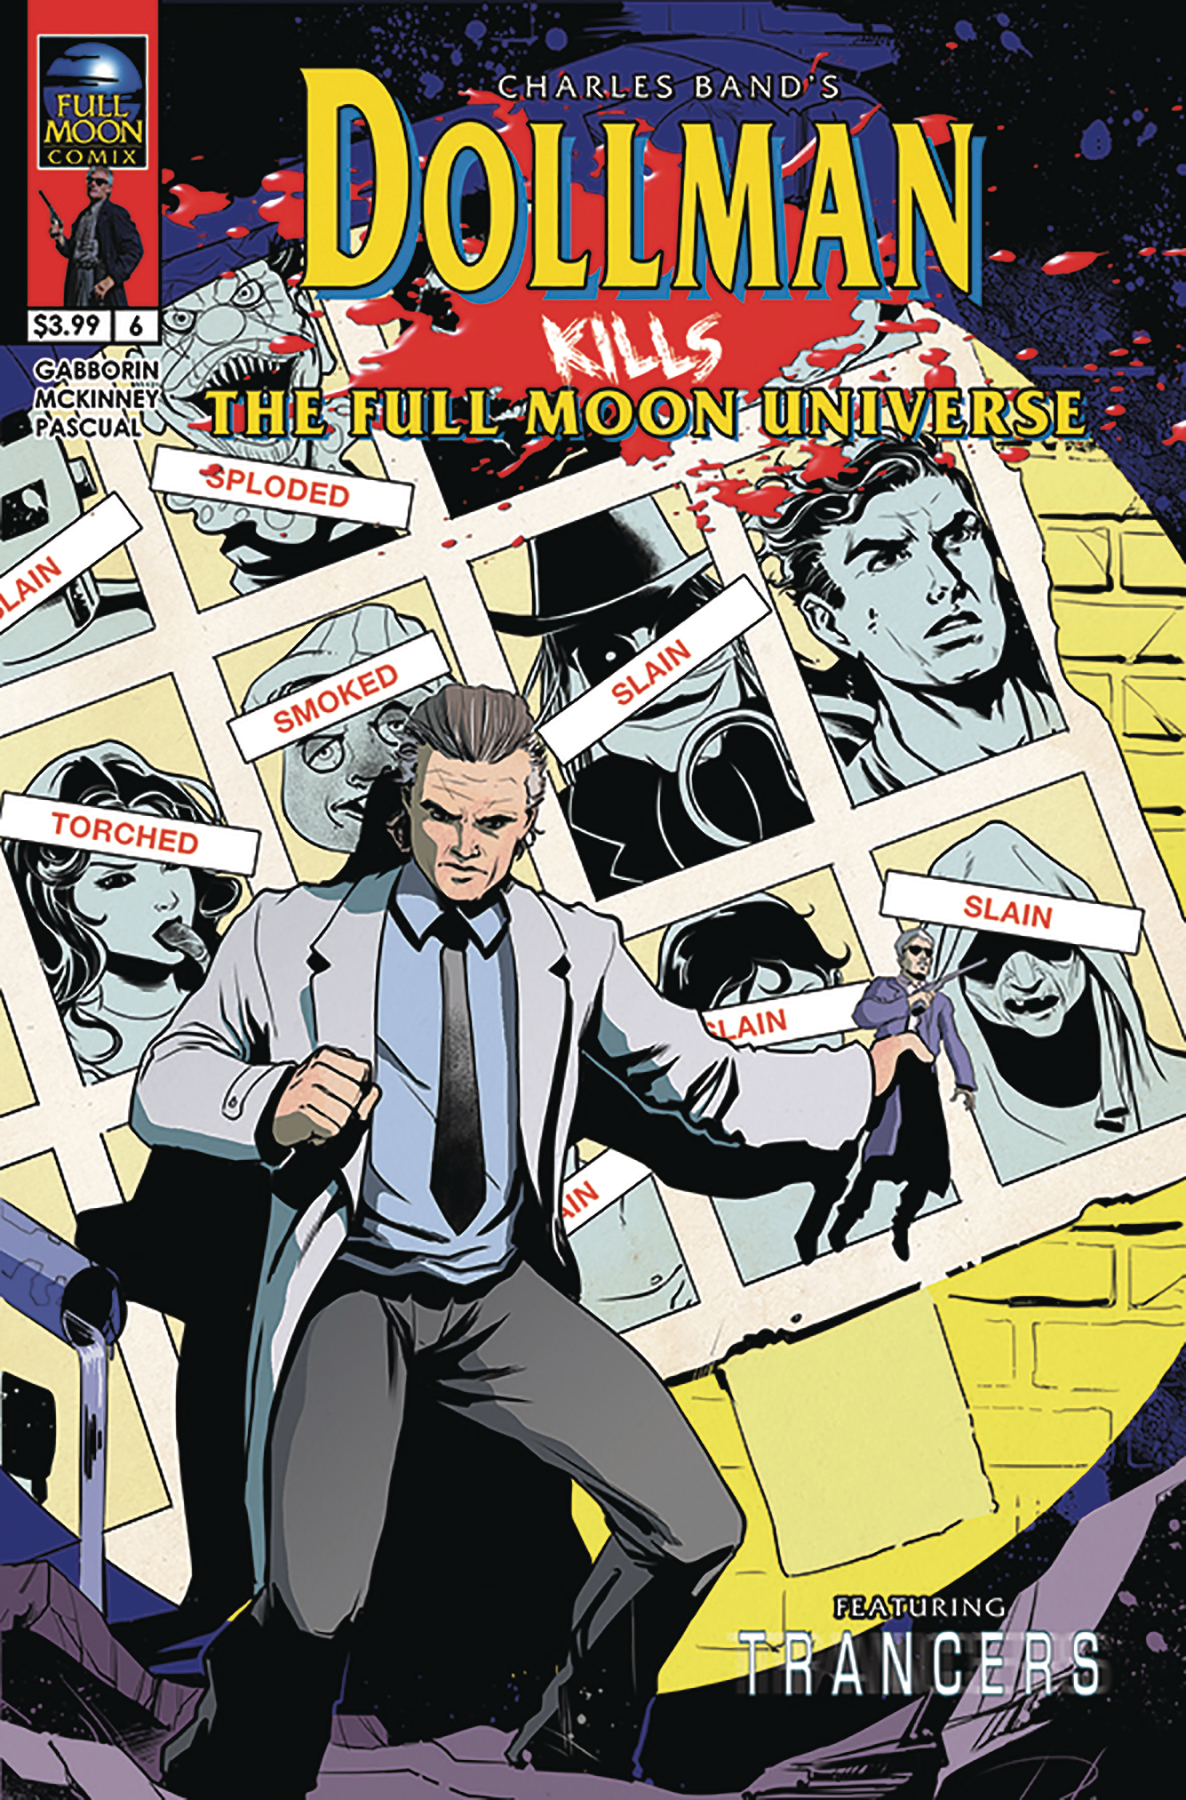 DOLLMAN KILLS THE FULL MOON UNIVERSE #6 (OF 6) CVR B PASCUAL